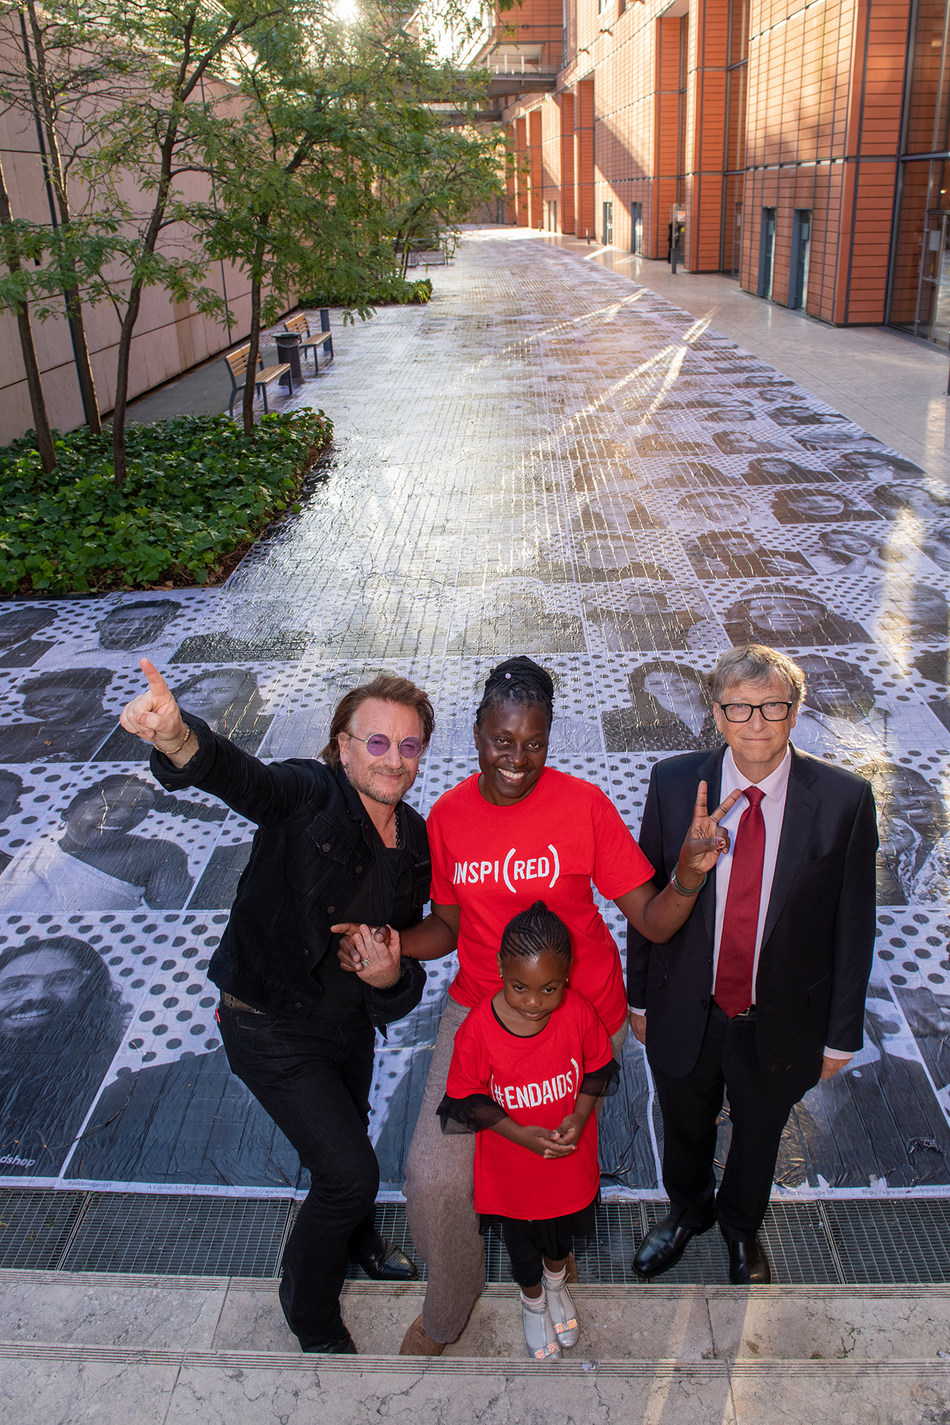 Bono, Co-Founder, (RED), AIDS activist Constance Mudenda, alongside her daughter, Lubona and Bill Gates, Co-Chair, the Bill & Melinda Gates Foundation, are photographed at an installation by the Inside Out Project in Lyon. The installation features the faces of 850 people who support the fight to end AIDS - the same number of women who contract HIV each day.